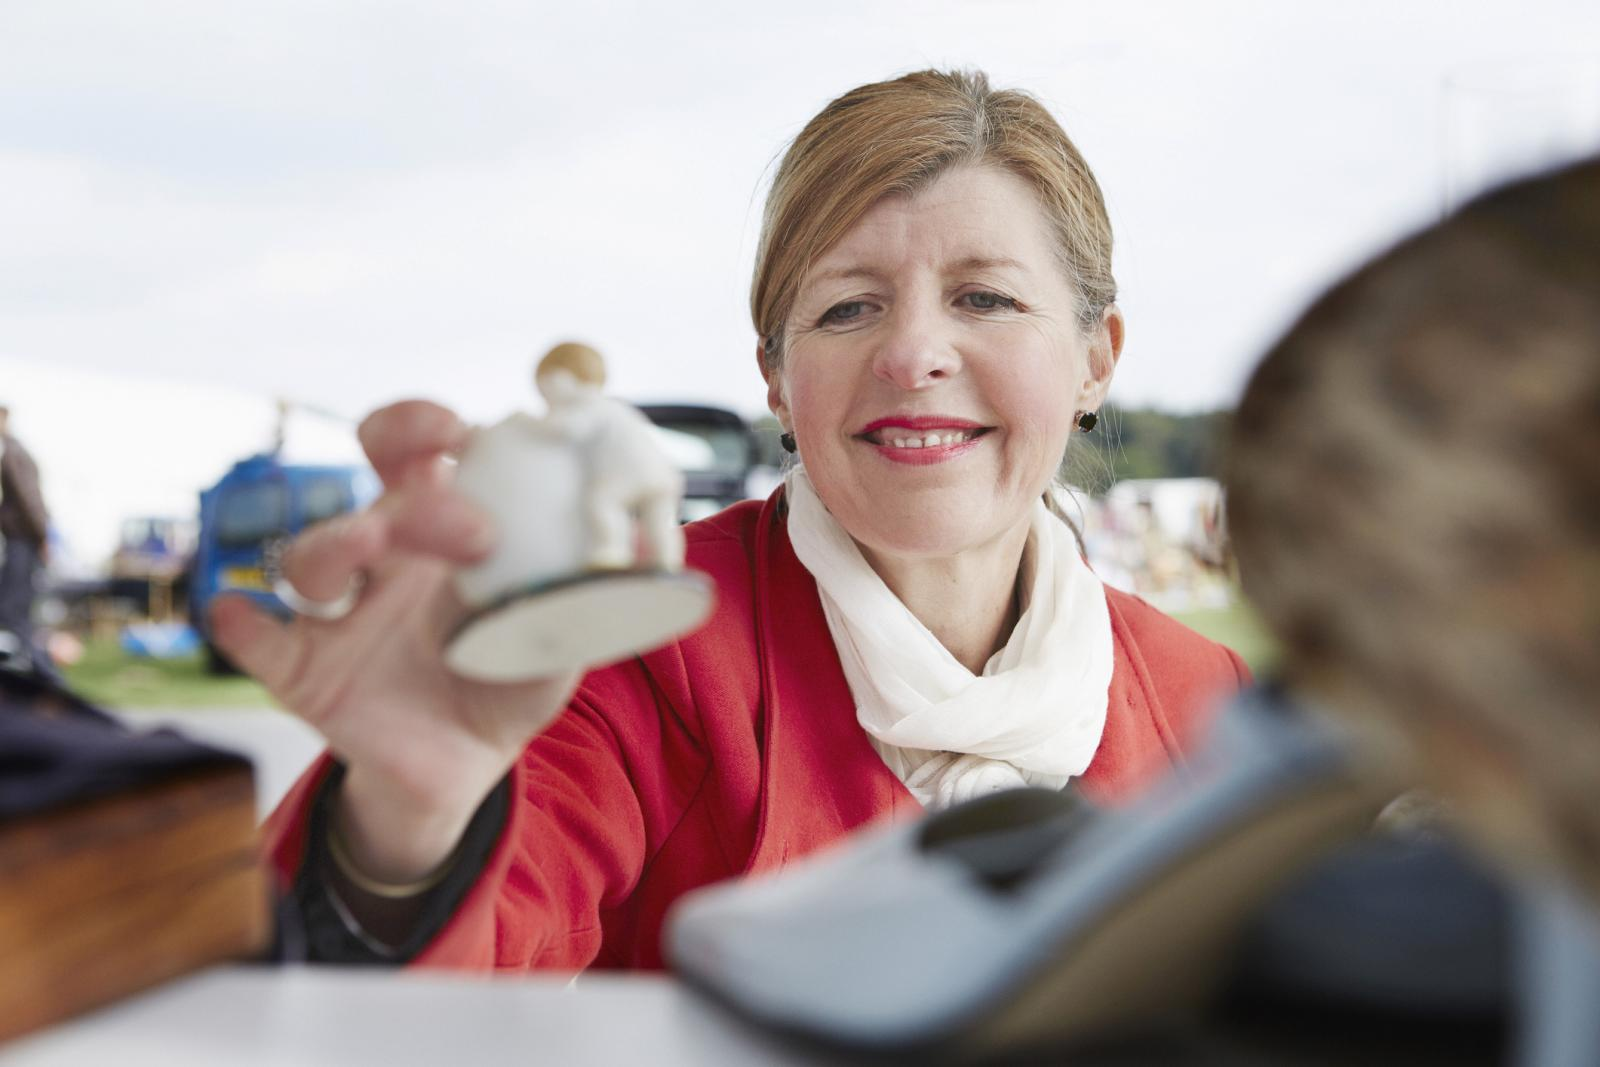 Woman in a red coat holding a vintage porcelain figurine at a flea market